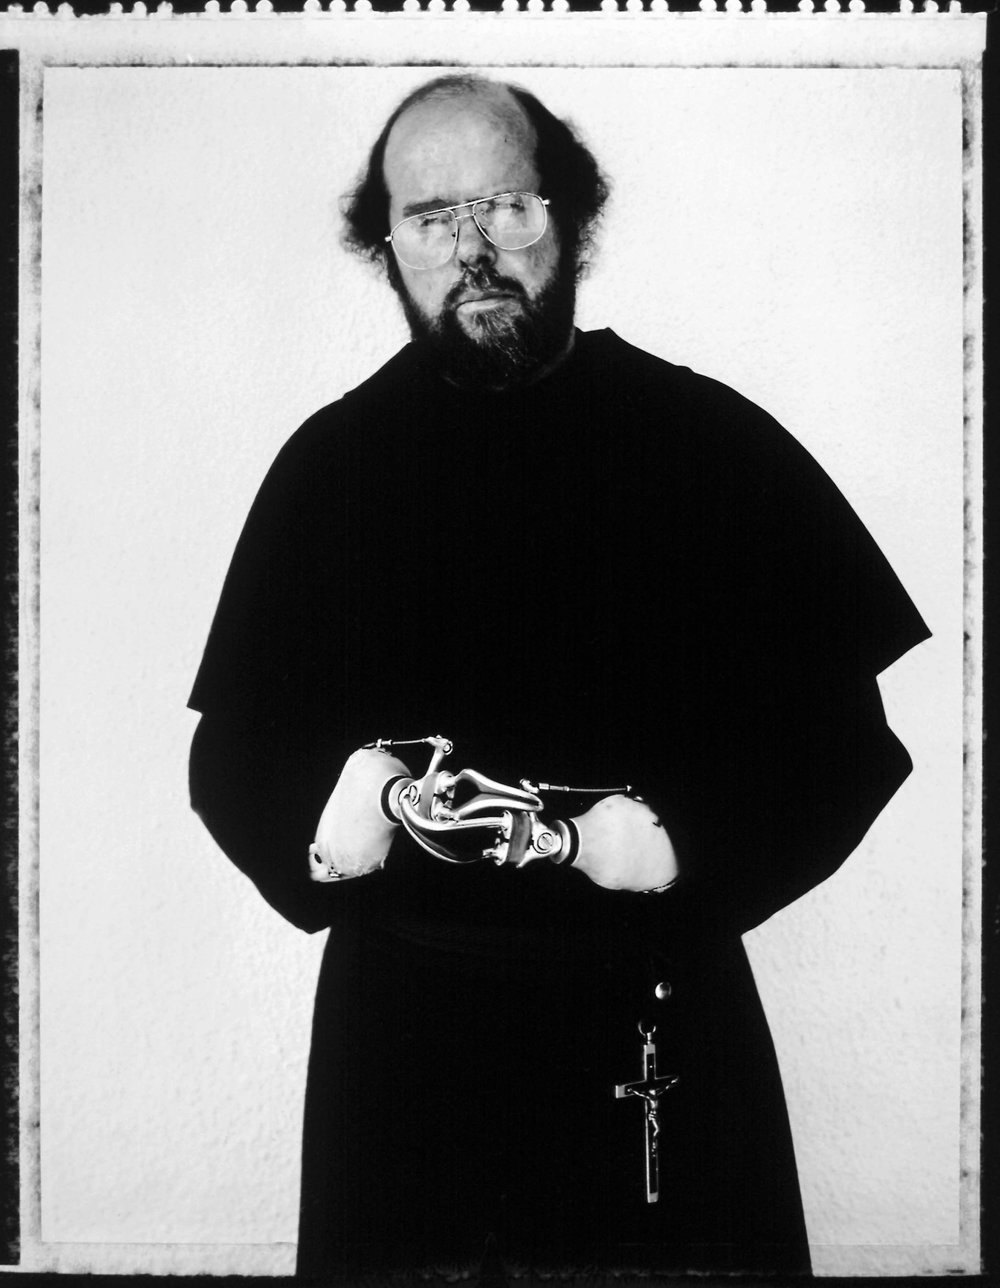 Father Michael Lapsley, Cape Town, South Africa, 16th February 1997. He received a letter bomb in 1991.